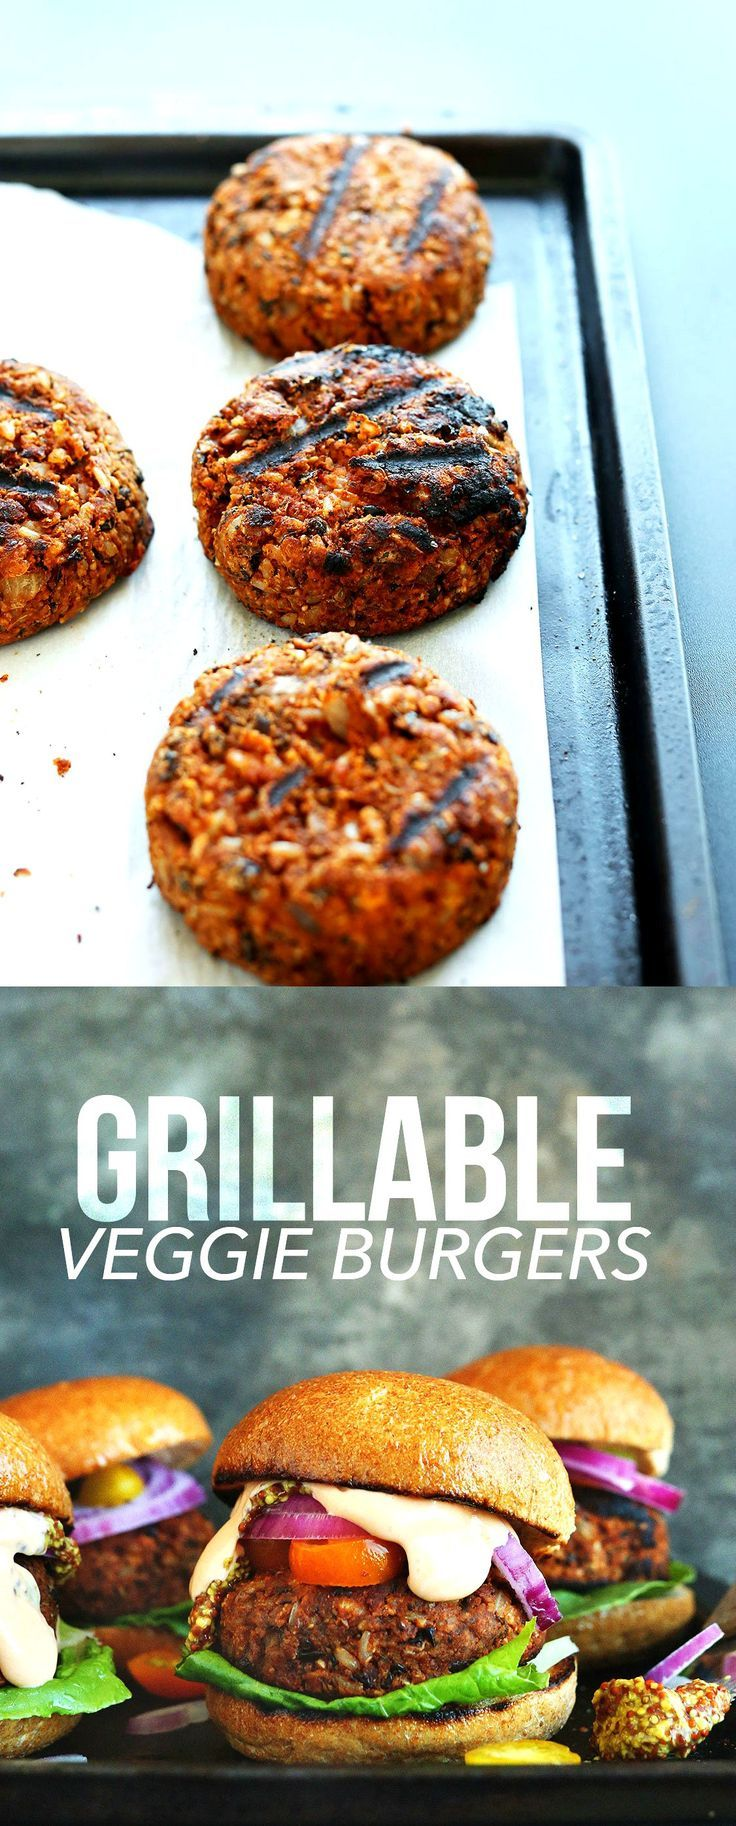 Easy Grillable Veggie Burgers - With fluffy brown rice, black beans, walnuts and spices.